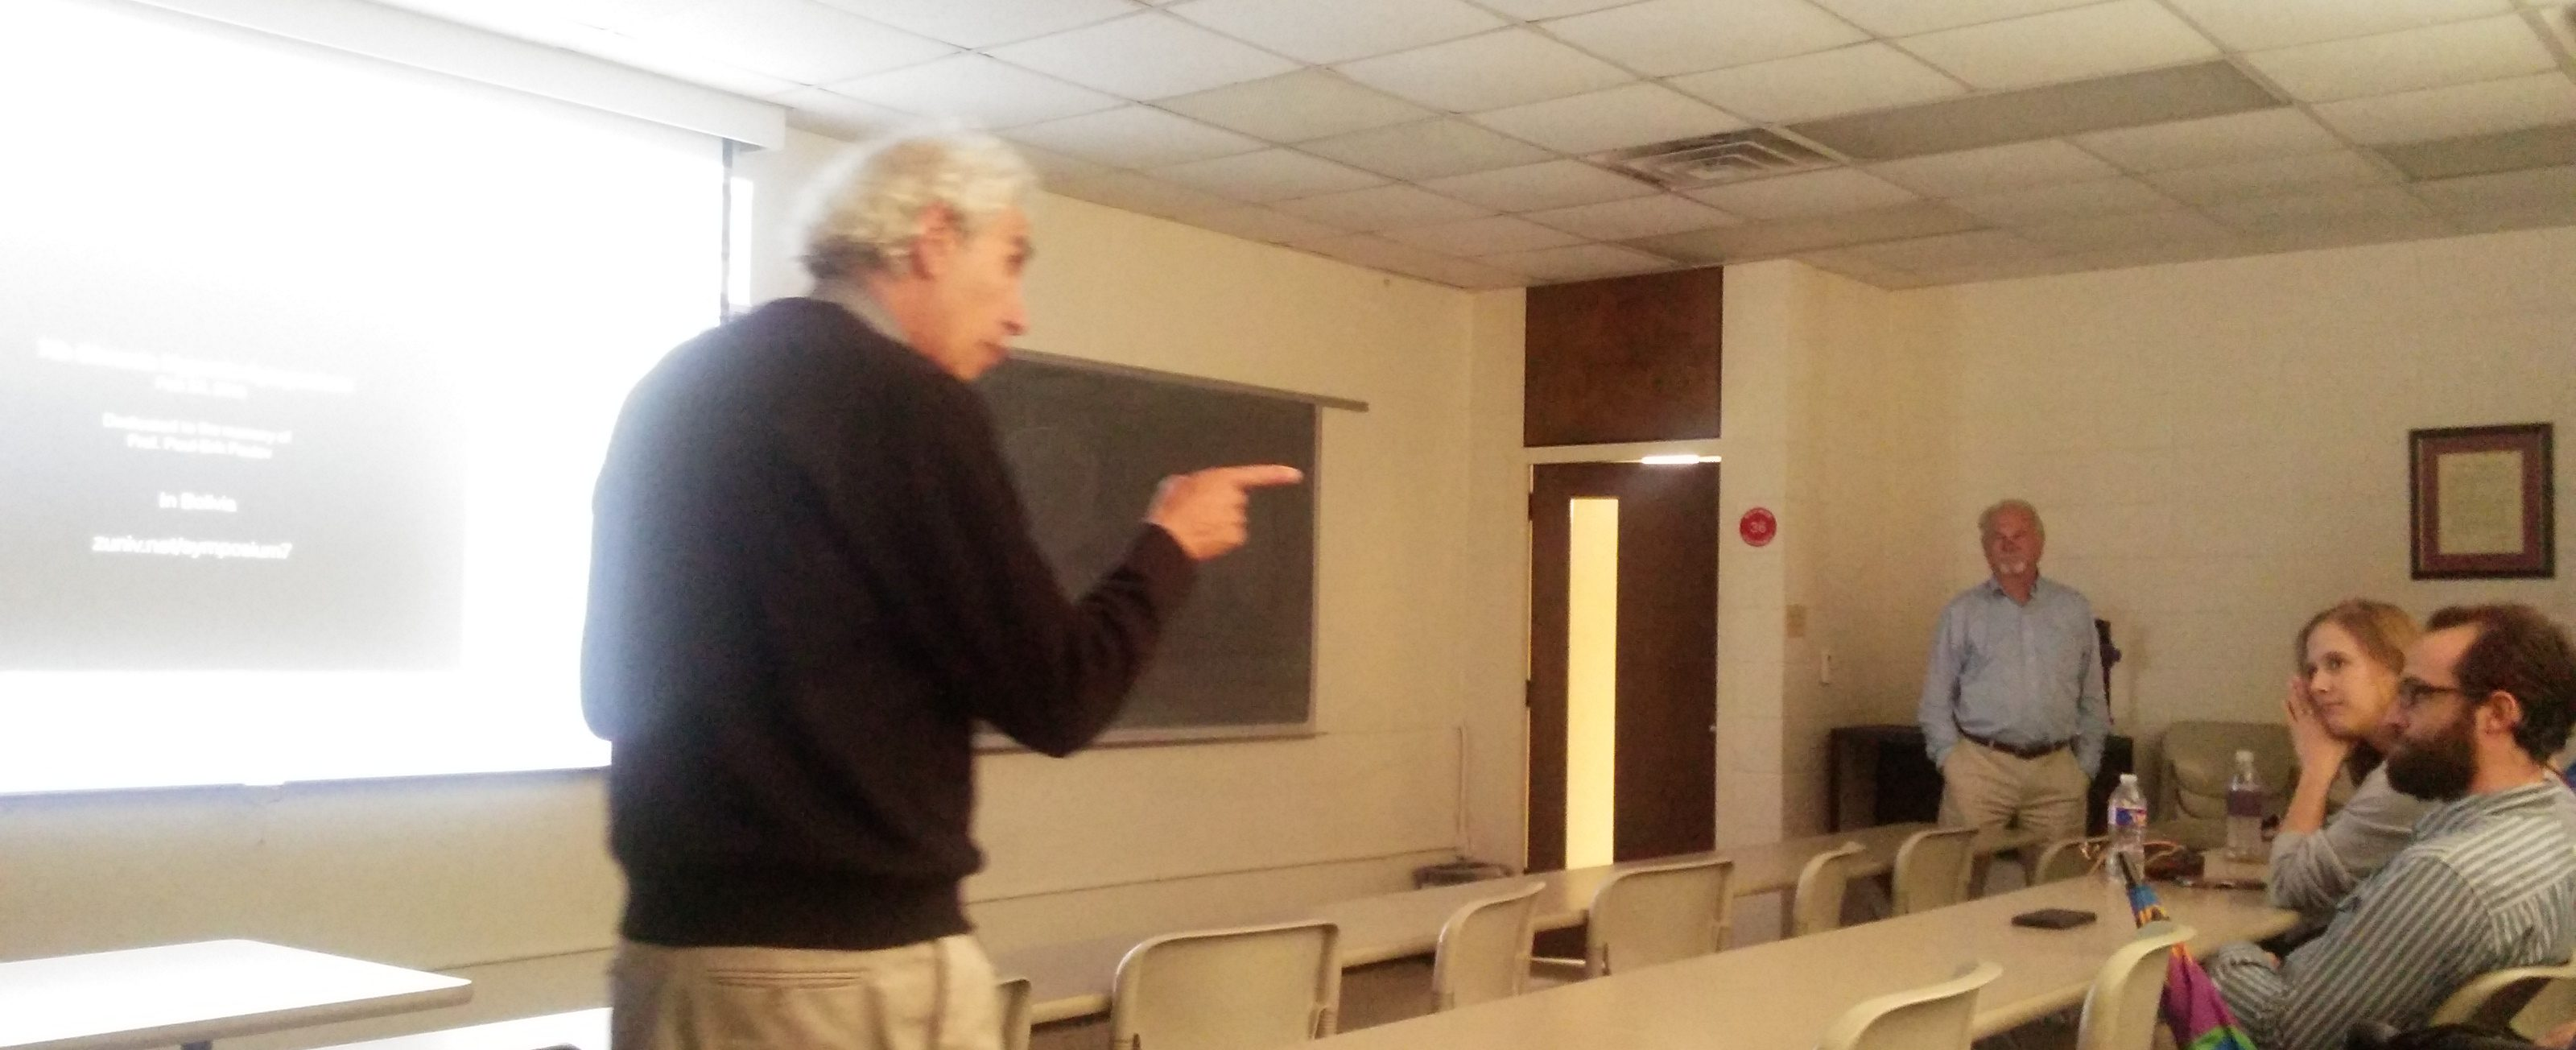 Prof. Dr. Gustavo Zubieta-Calleja, explaining the logic behind his proposal for future space travel. Biology aiding Physics in the conquest of Space.